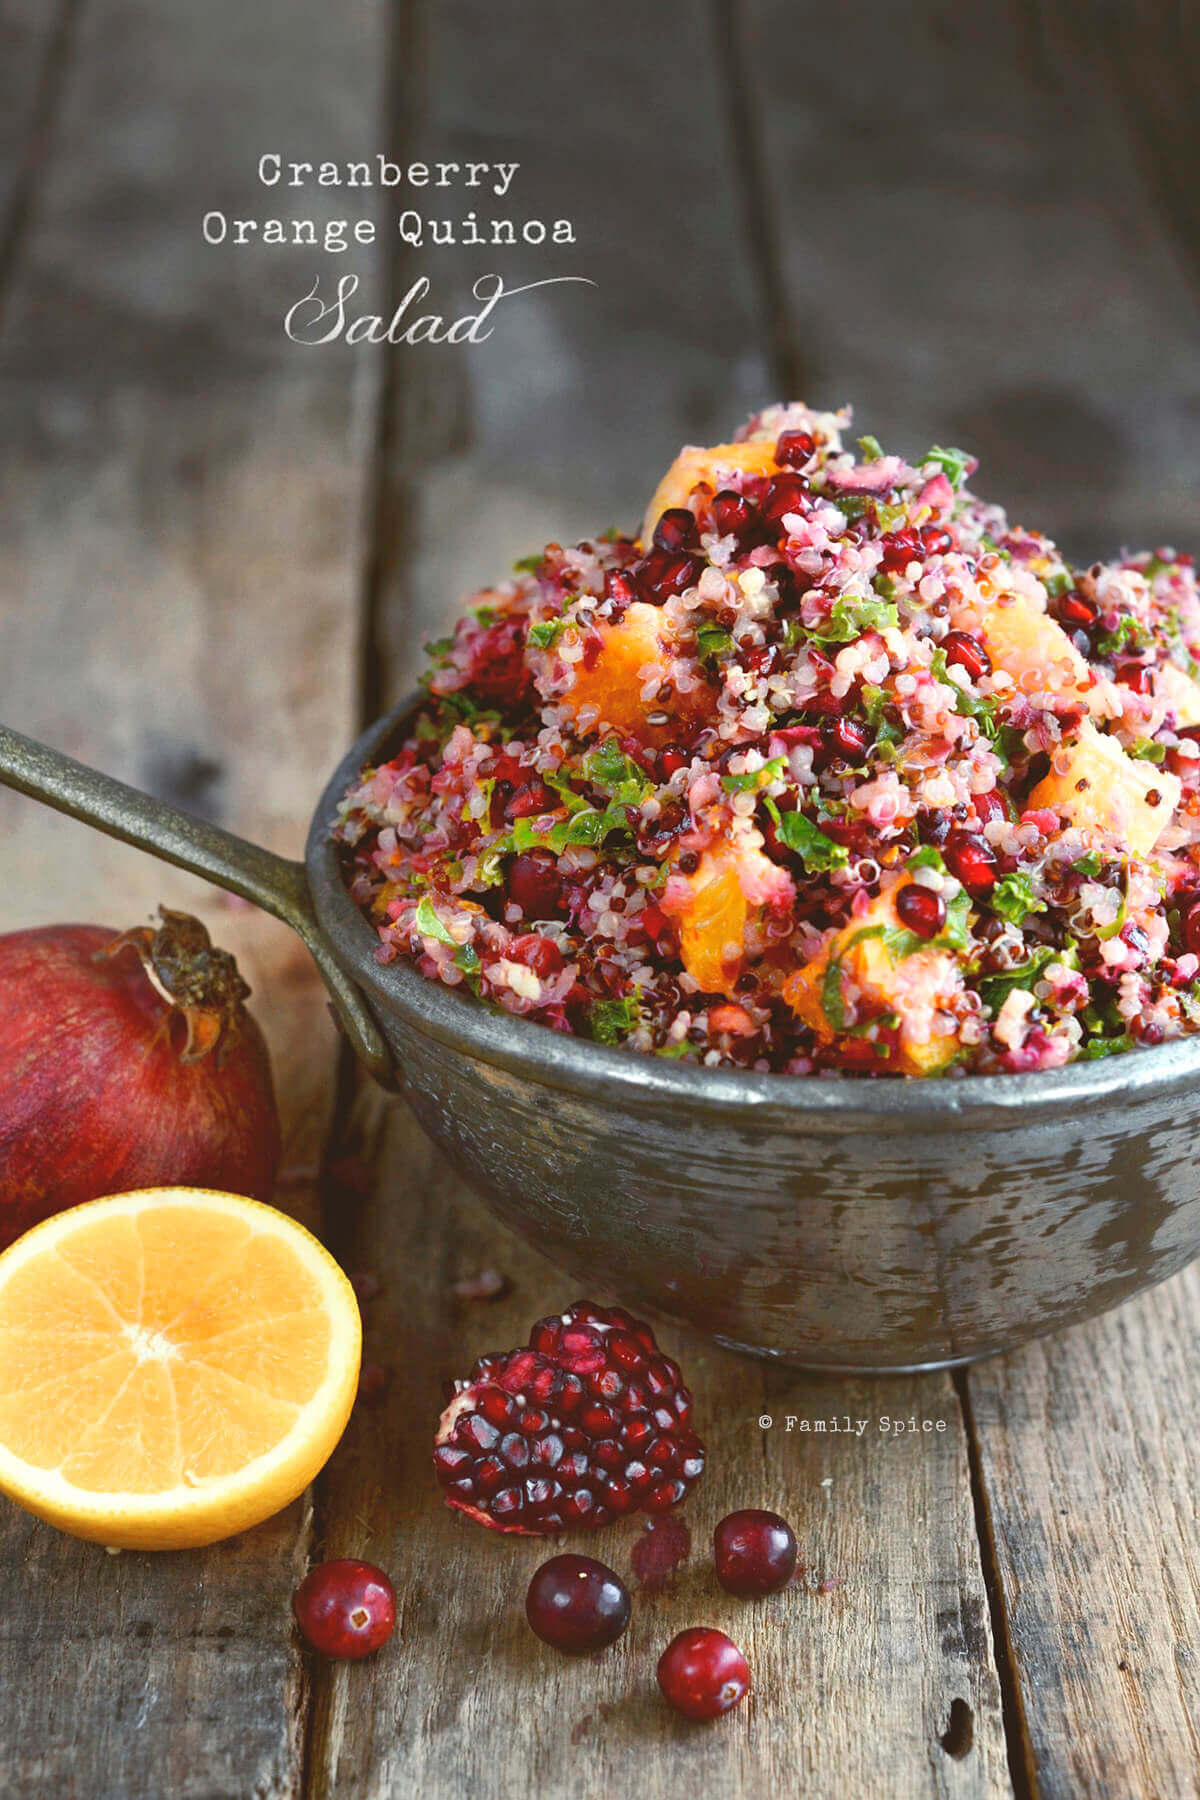 Cranberry Quinoa Salad with Orange, Mint and Kale - Family Spice